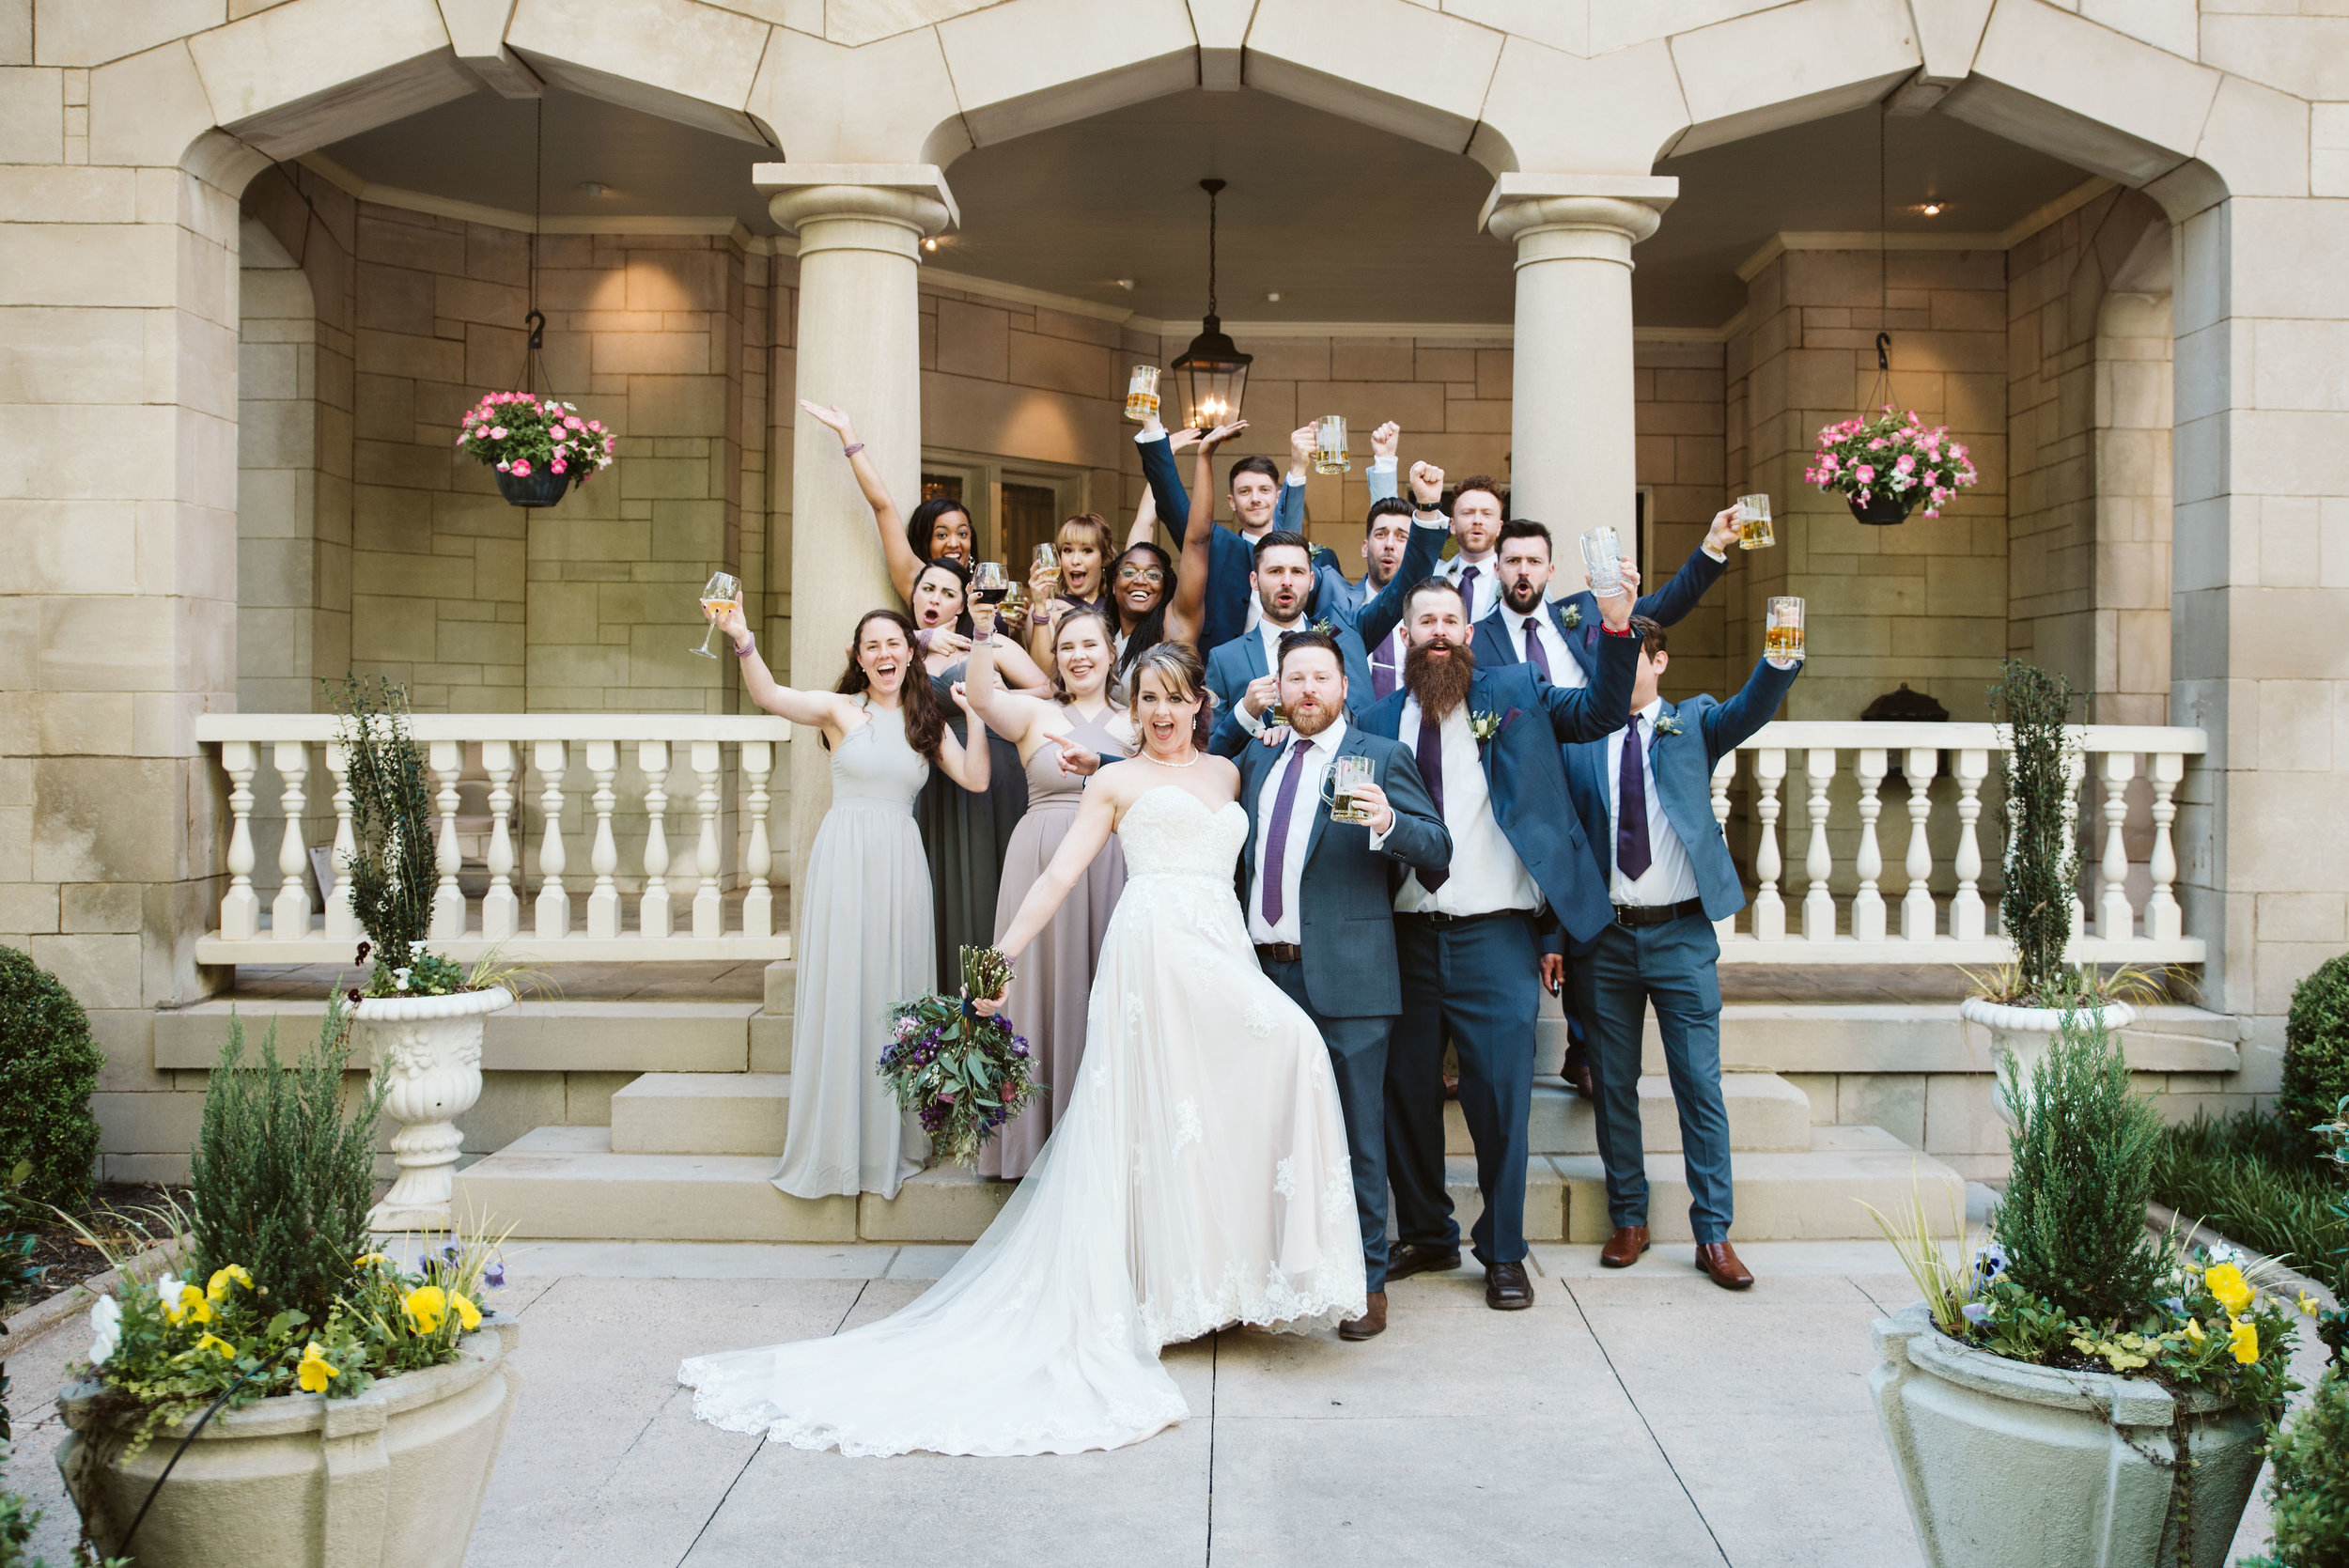 Bridal party poses in front of The Wimbish House in midtown Atlanta.